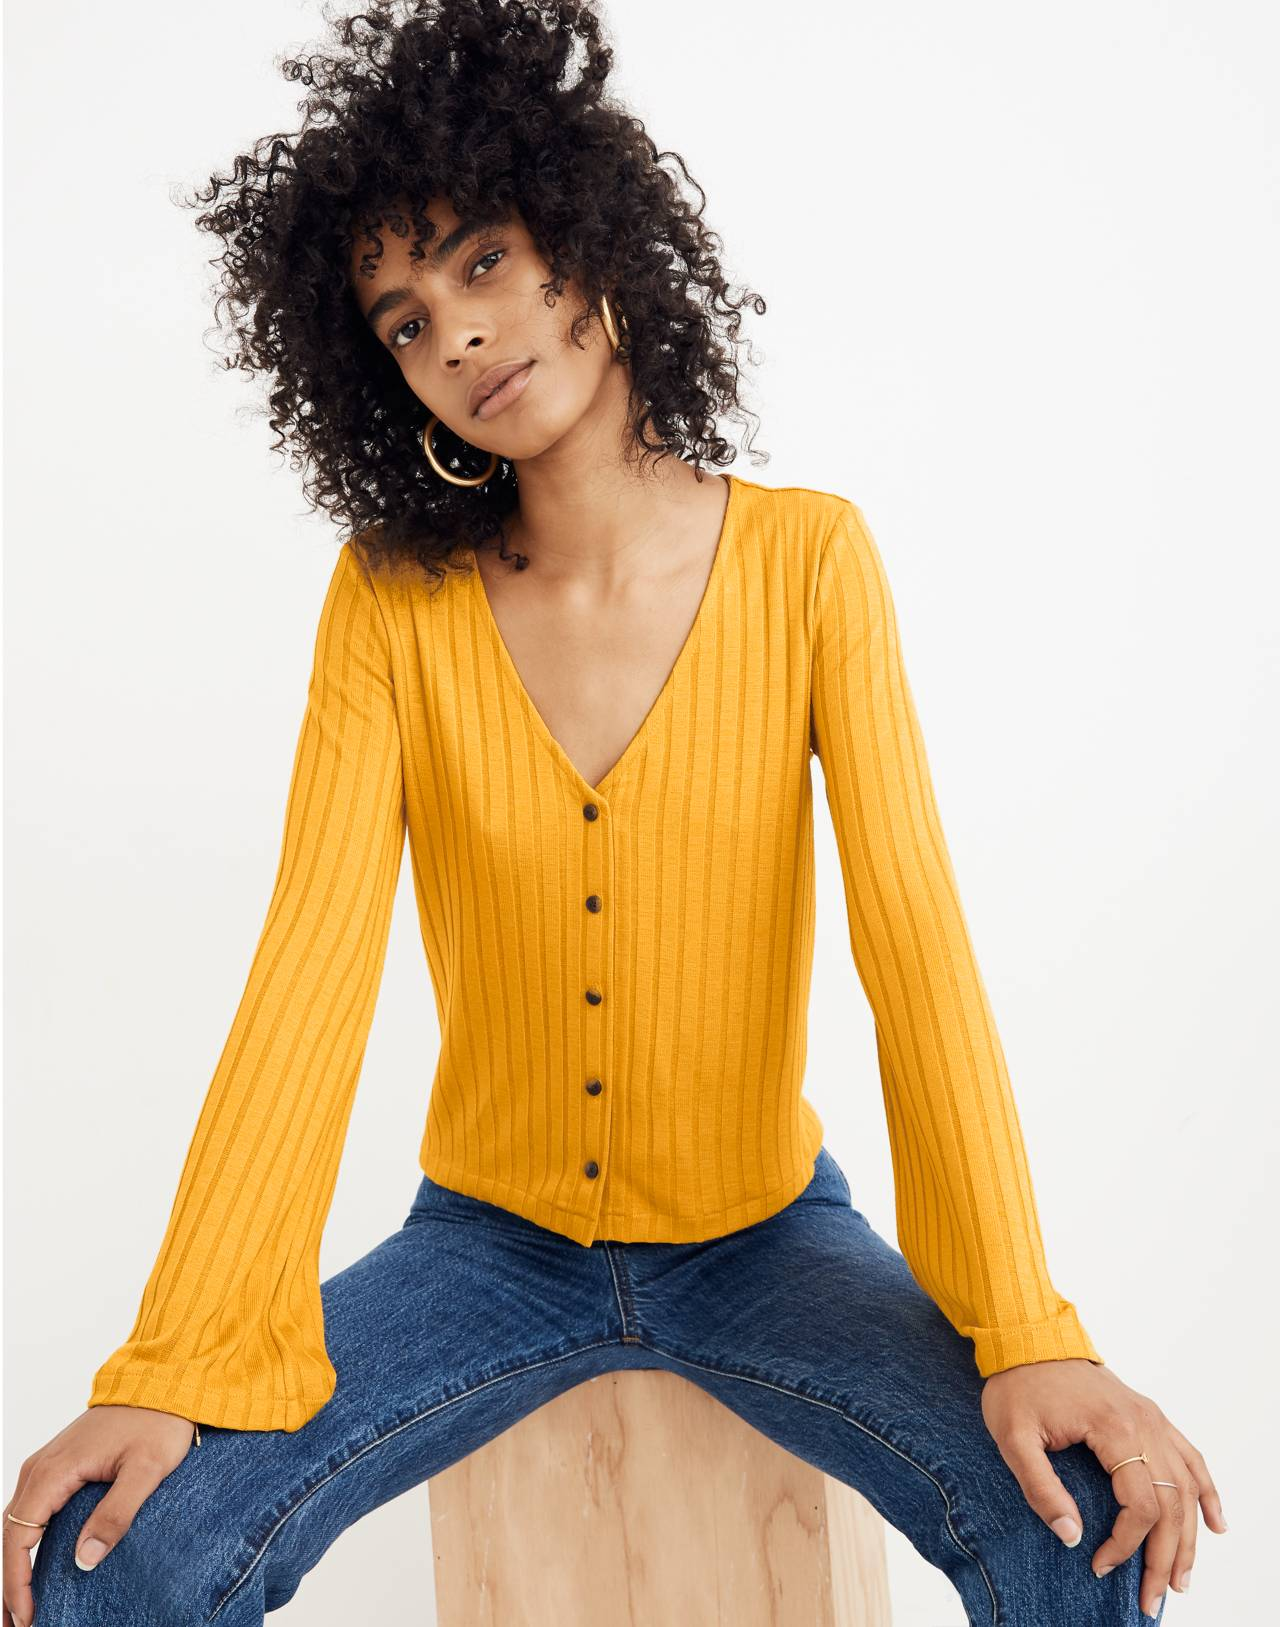 Bell-Sleeve Cardigan Top in nectar gold image 1